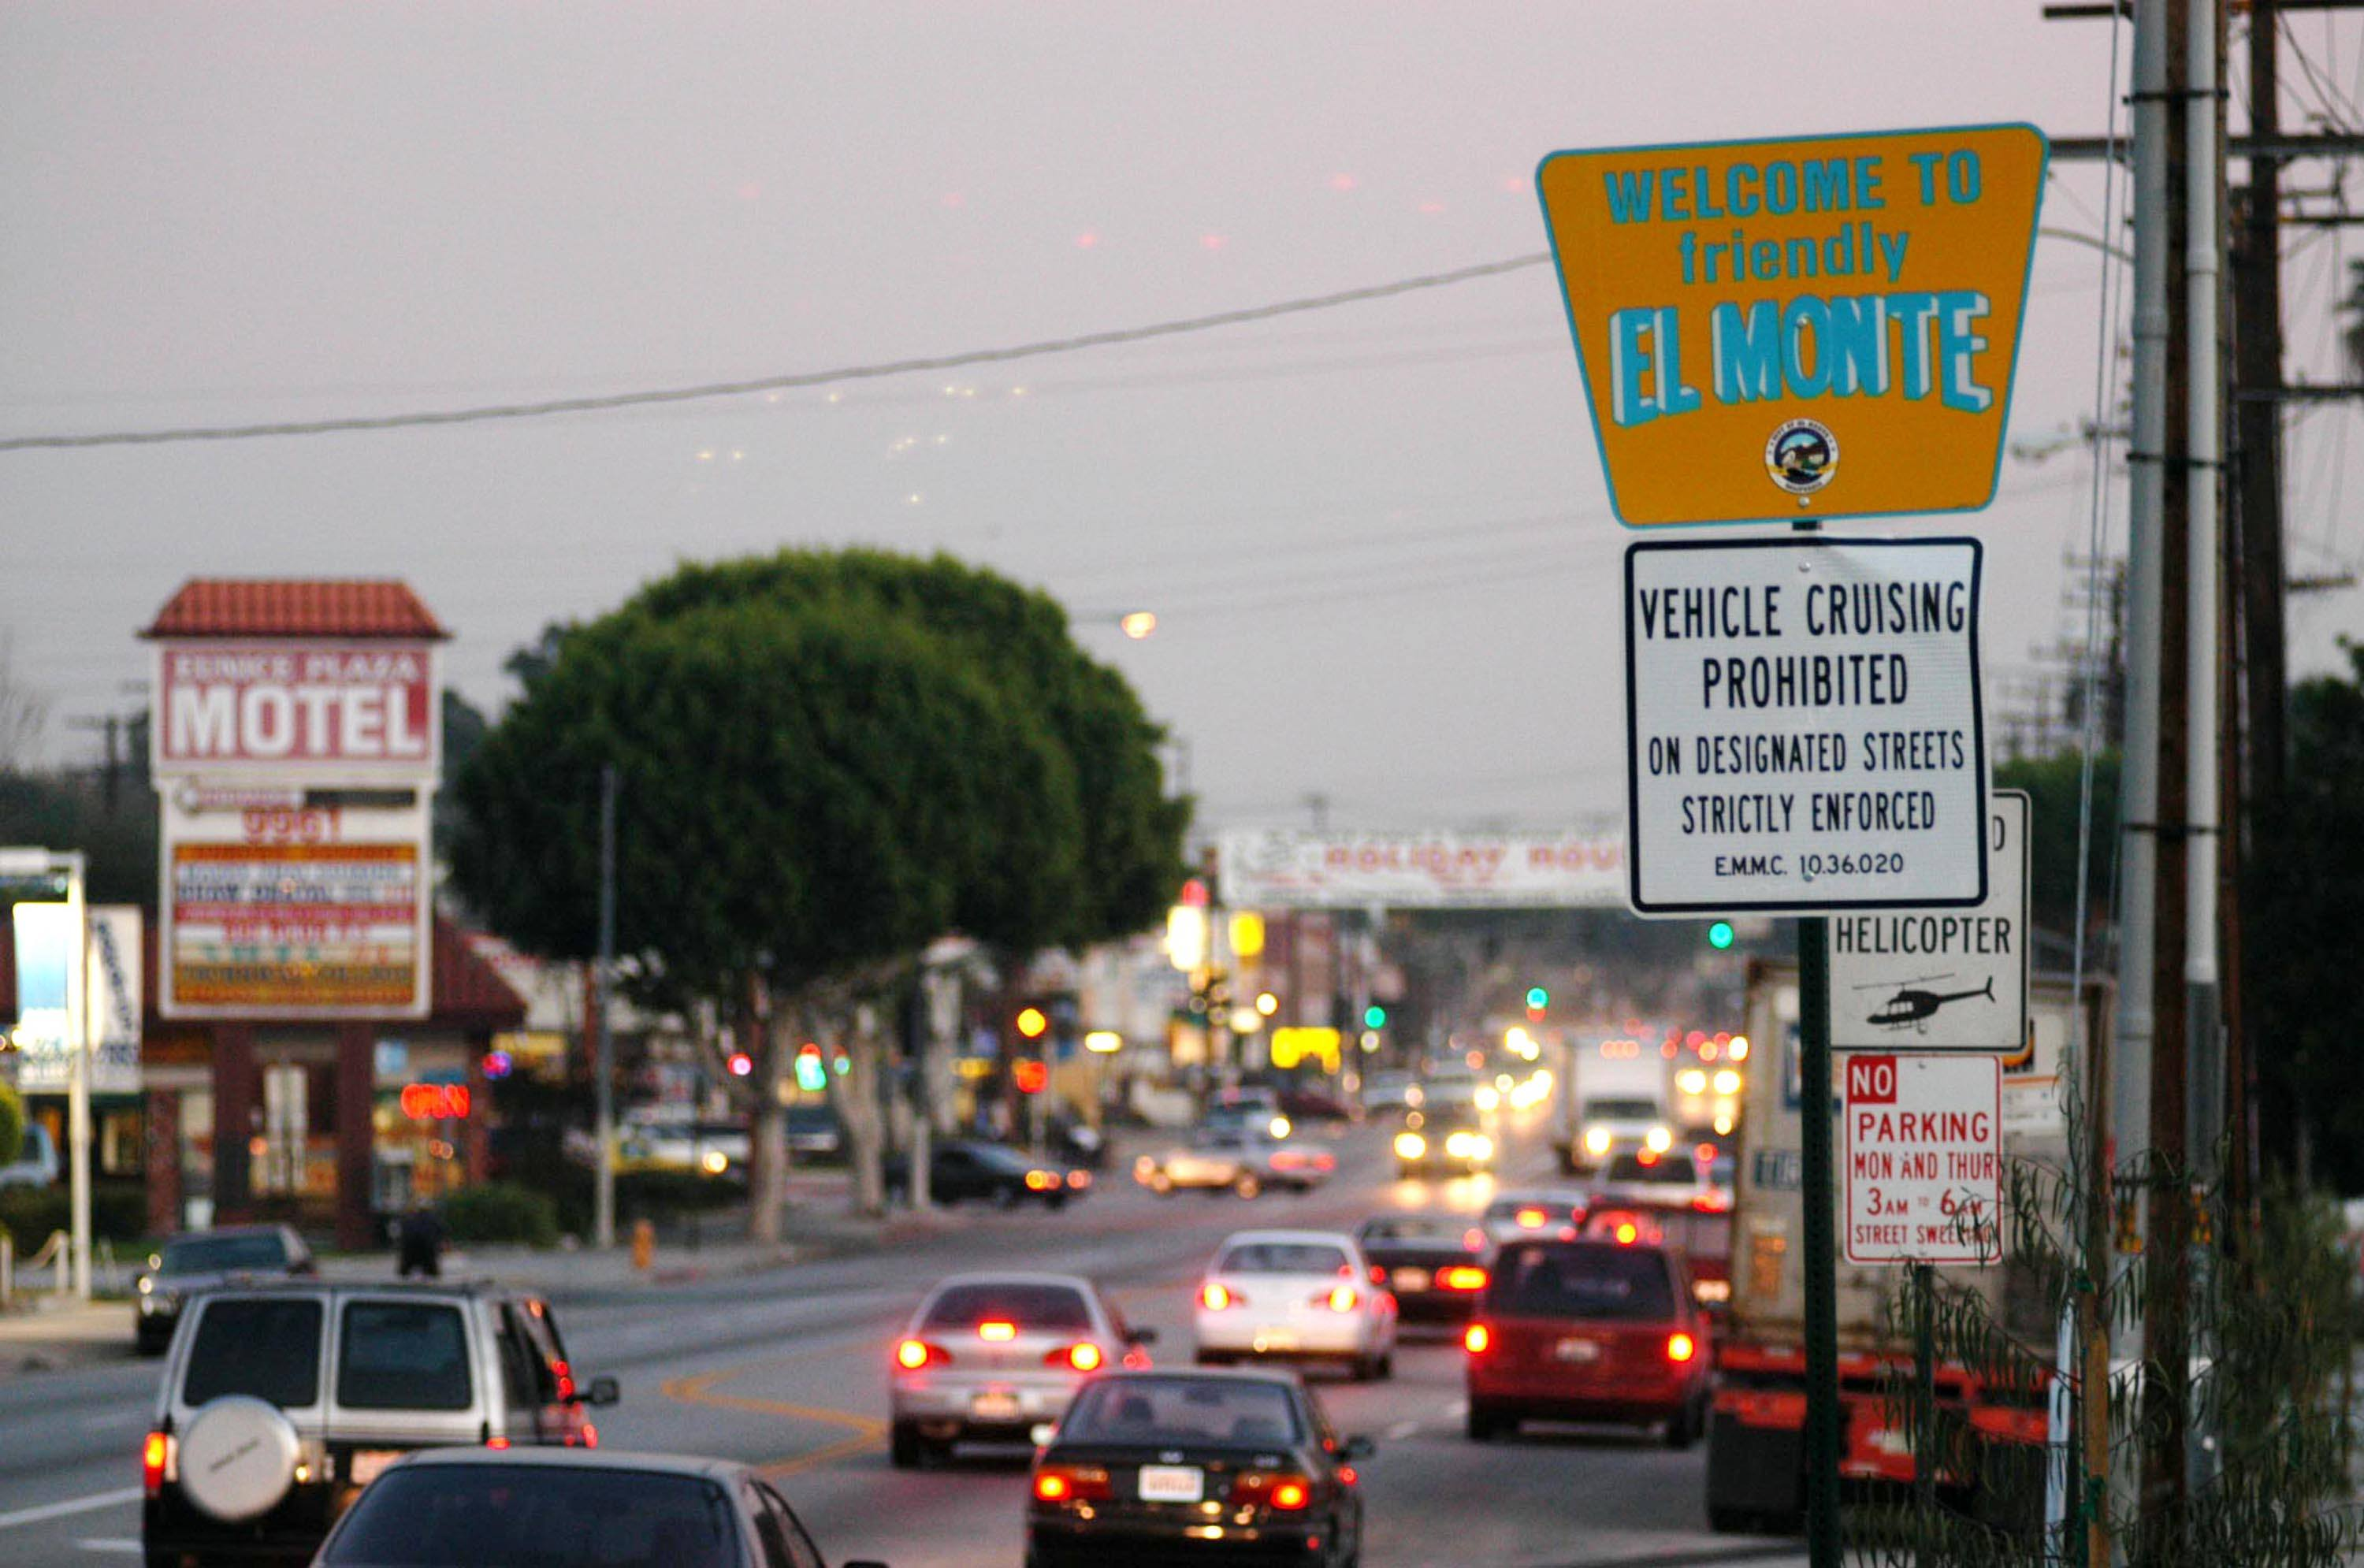 A sign of City of El Monte, California